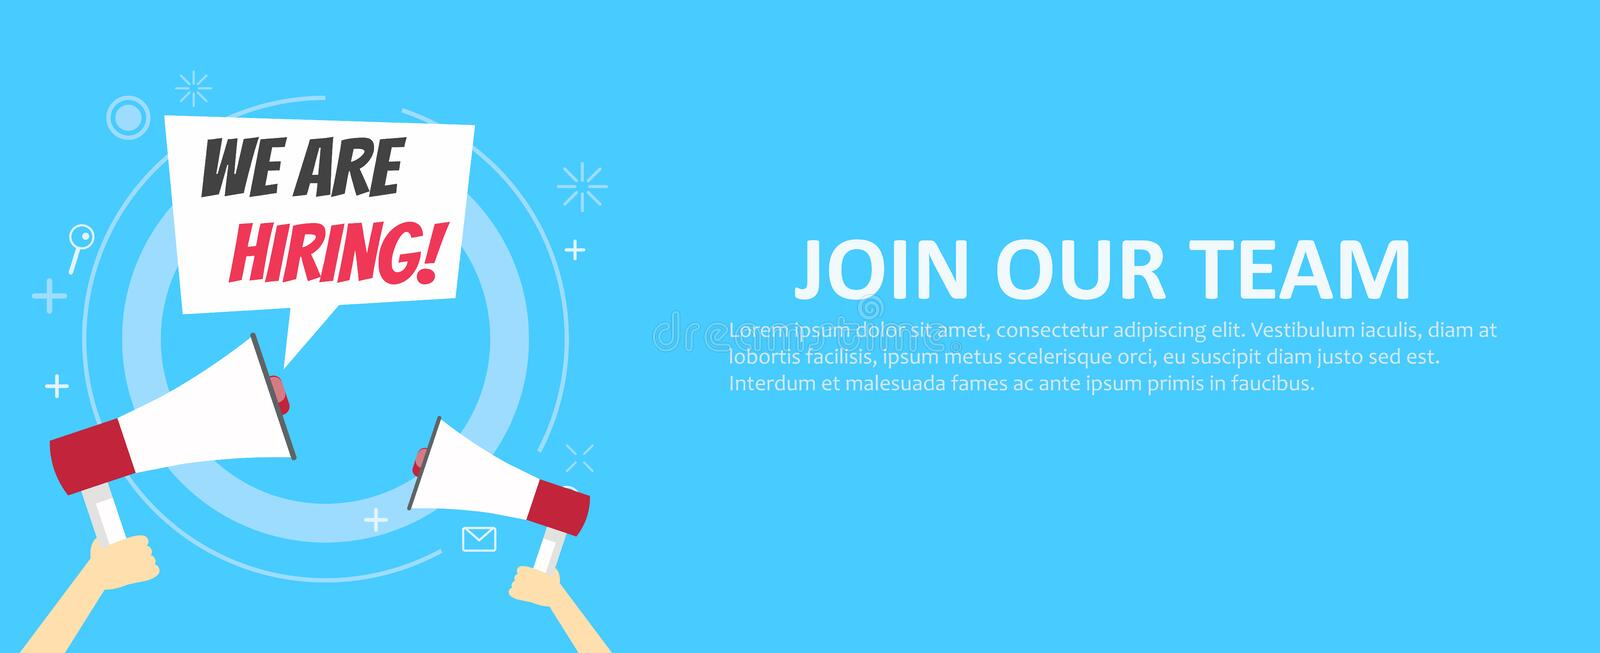 We are hiring banner. Join our team. Blue background and hands holding a megaphone stock illustration